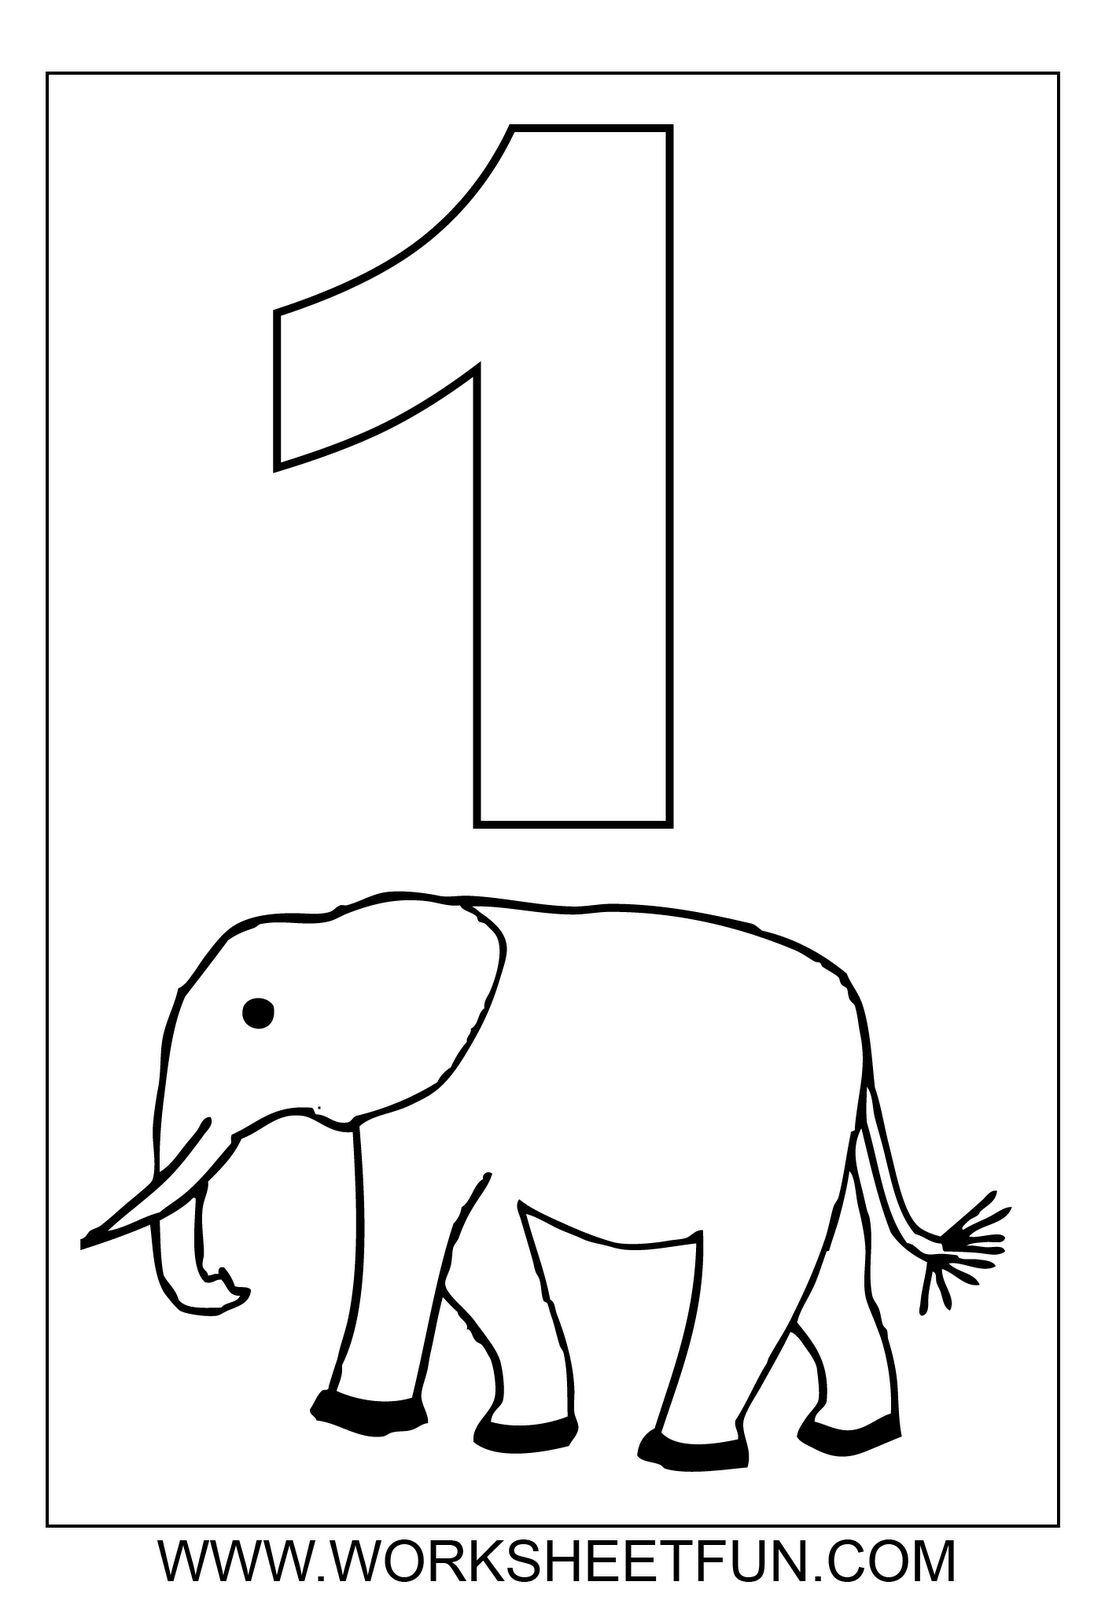 Colouring on worksheets - Number One Tracing And Coloring Worksheets 1